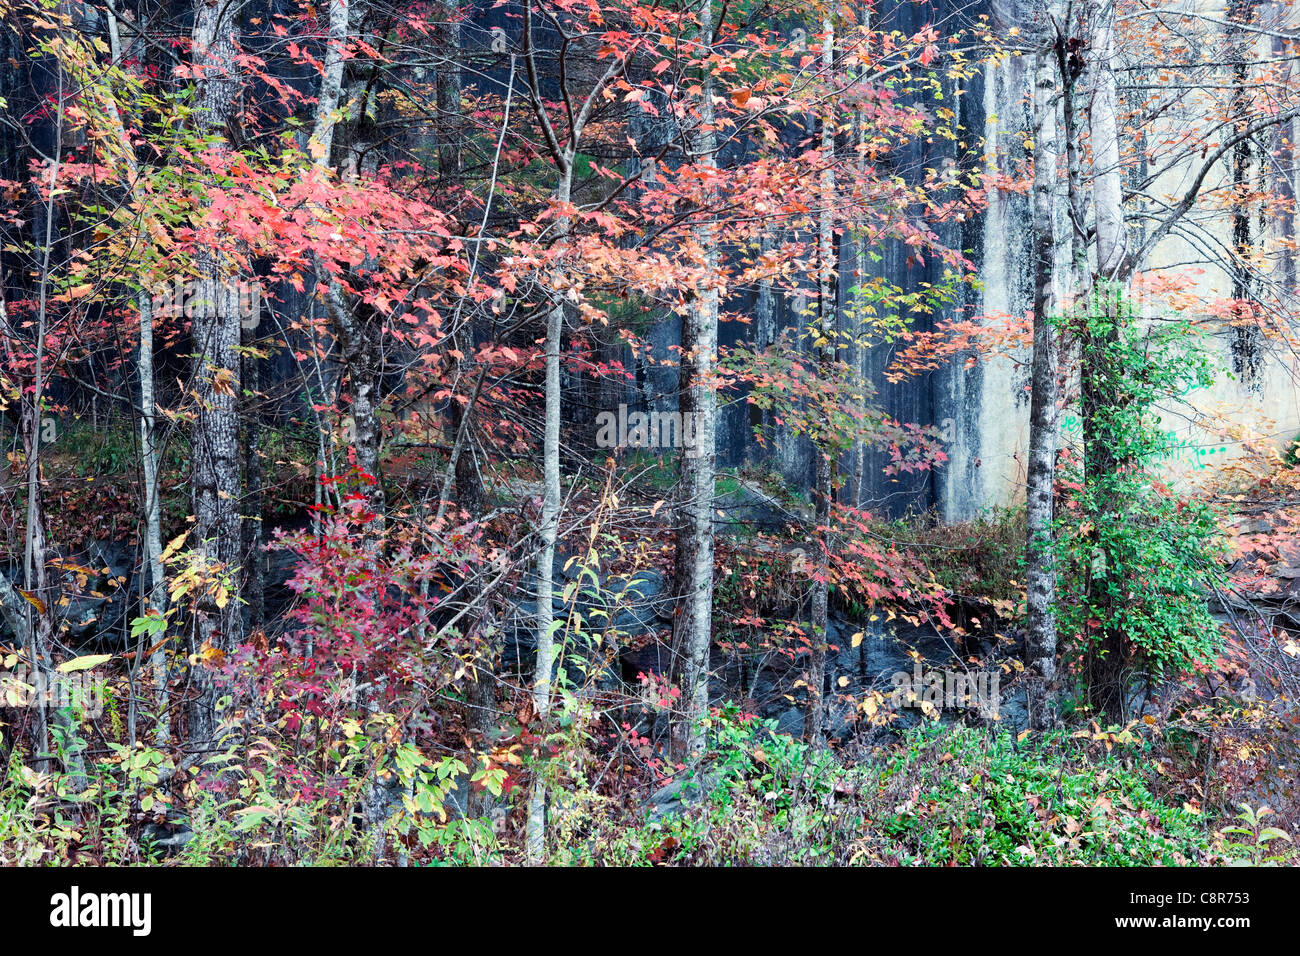 Fall Colors in the Forest - Pisgah National Forest - near Brevard, North Carolina USA - Stock Image